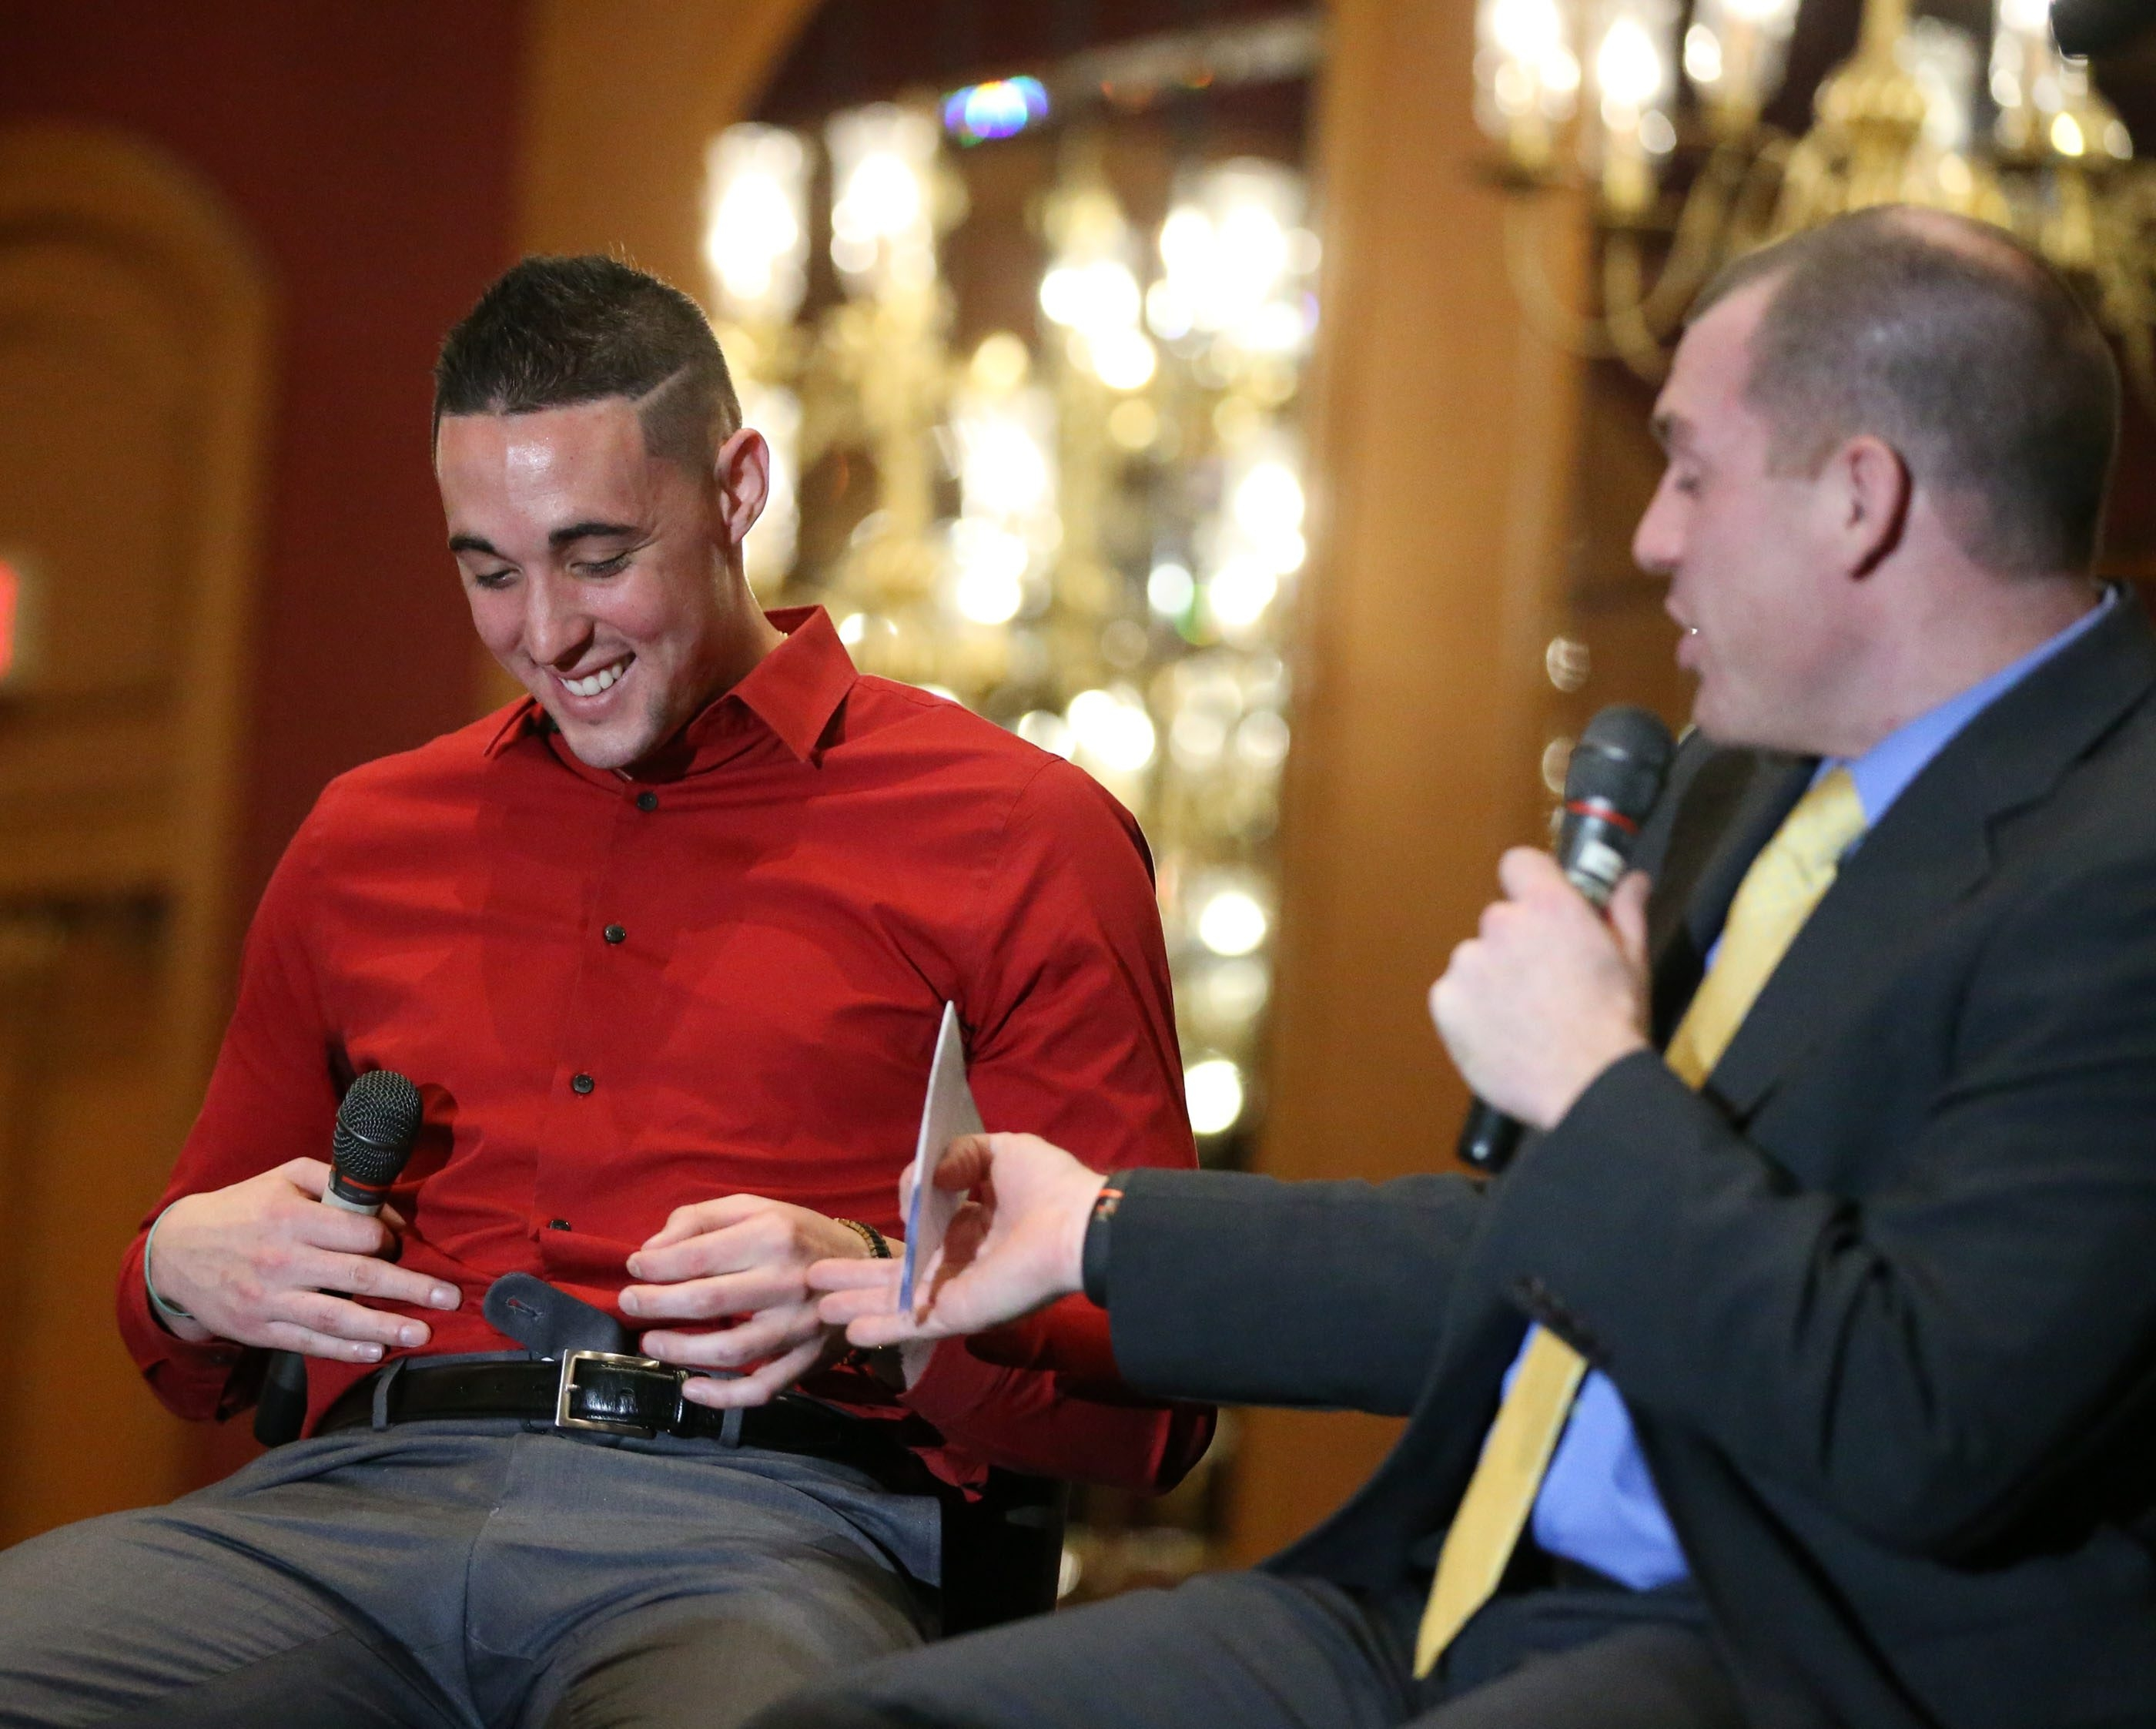 Toronto Blue Jay pitchers Aaron Sanchez shows Ben Wagner, the Voice of the Buffalo Bisons, his pants button that popped Wednesday as a result of his offseason workout program. (James P. McCoy/ Buffalo News)